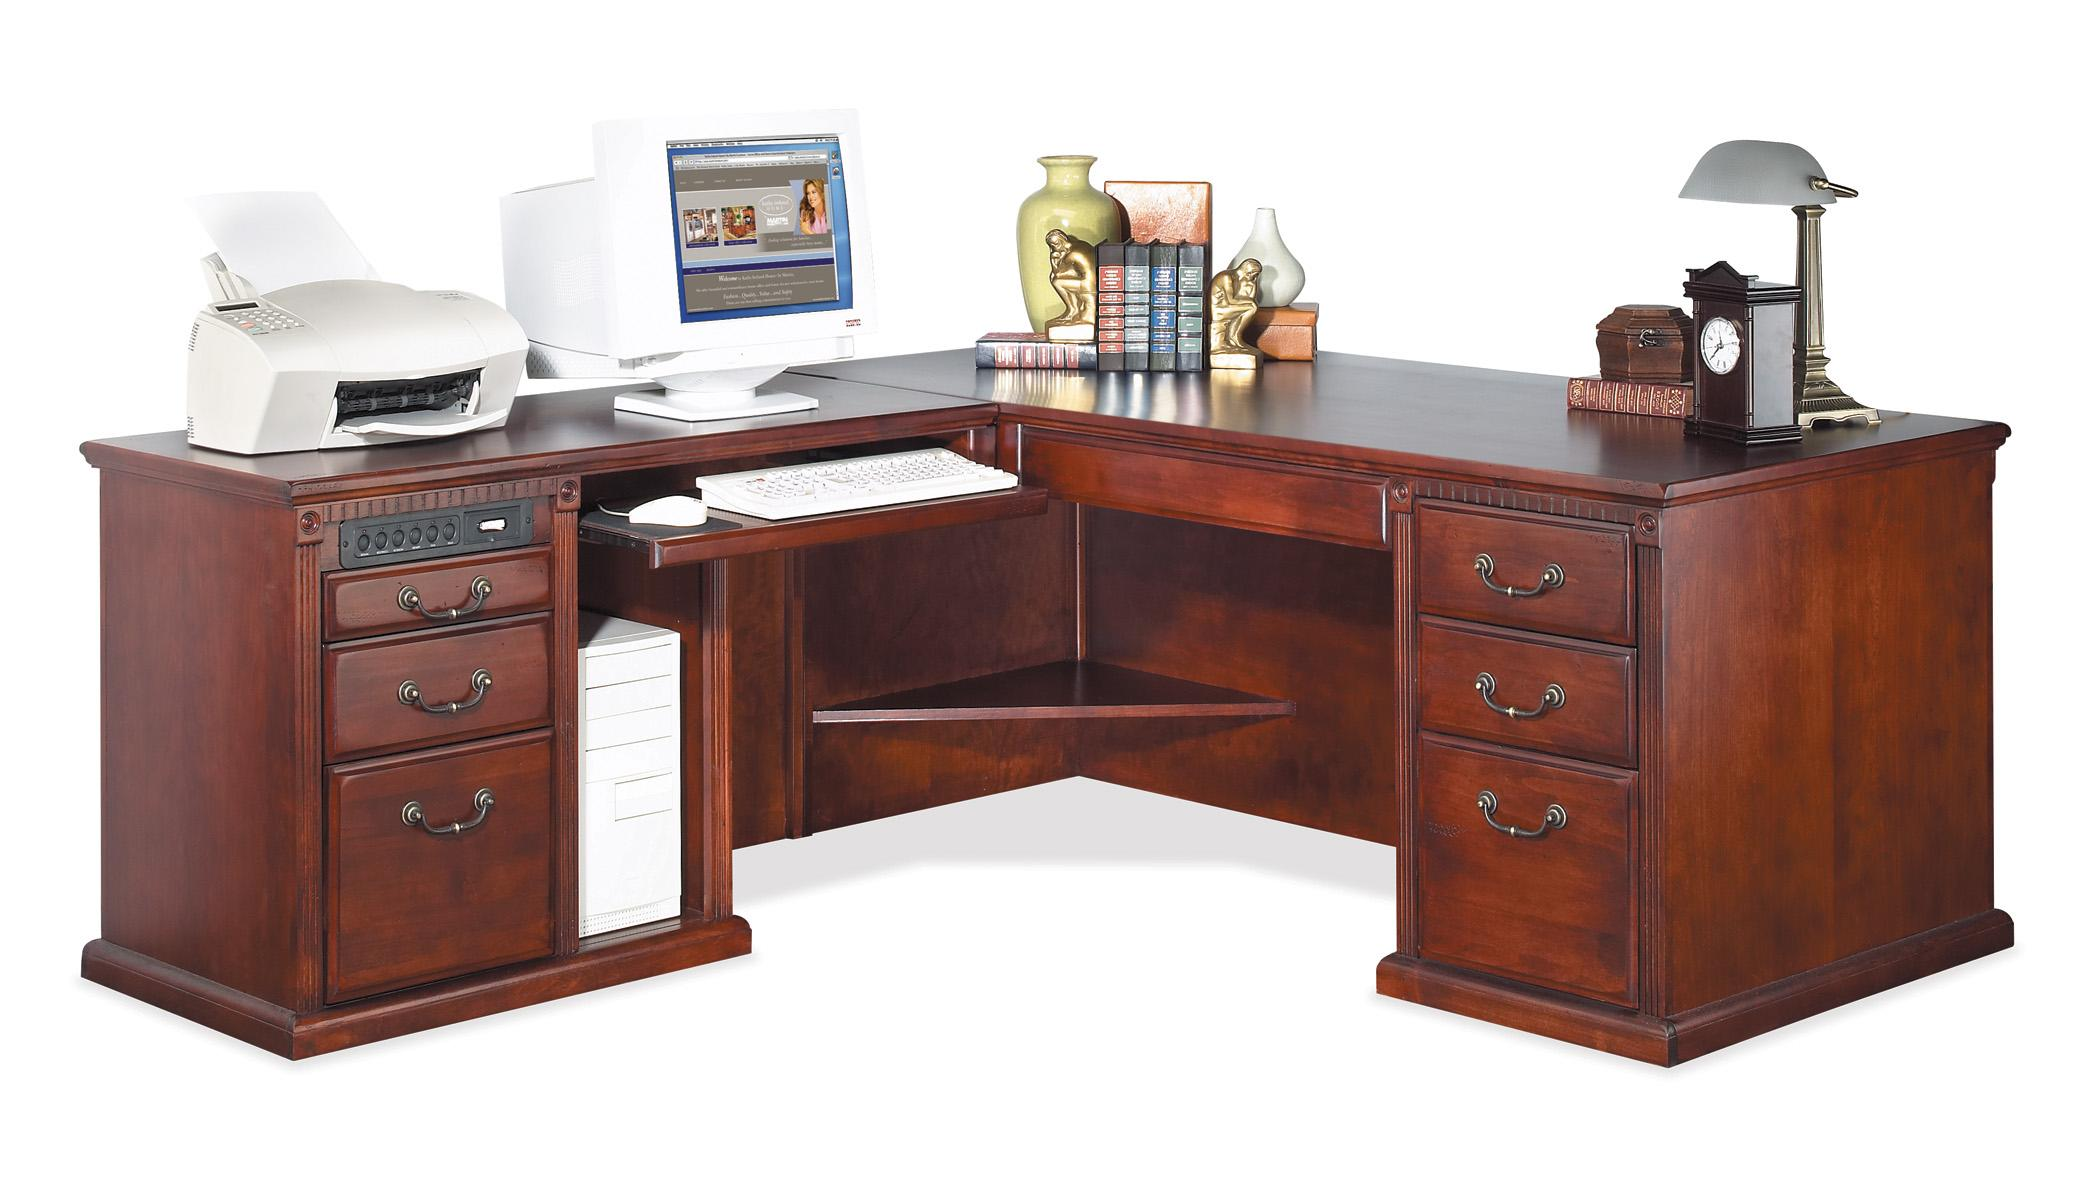 kathy ireland Home by Martin Huntington Club L-Shape Corner Desk w/ LHF Keyboard Return - Item Number: HCR684L+684L-R